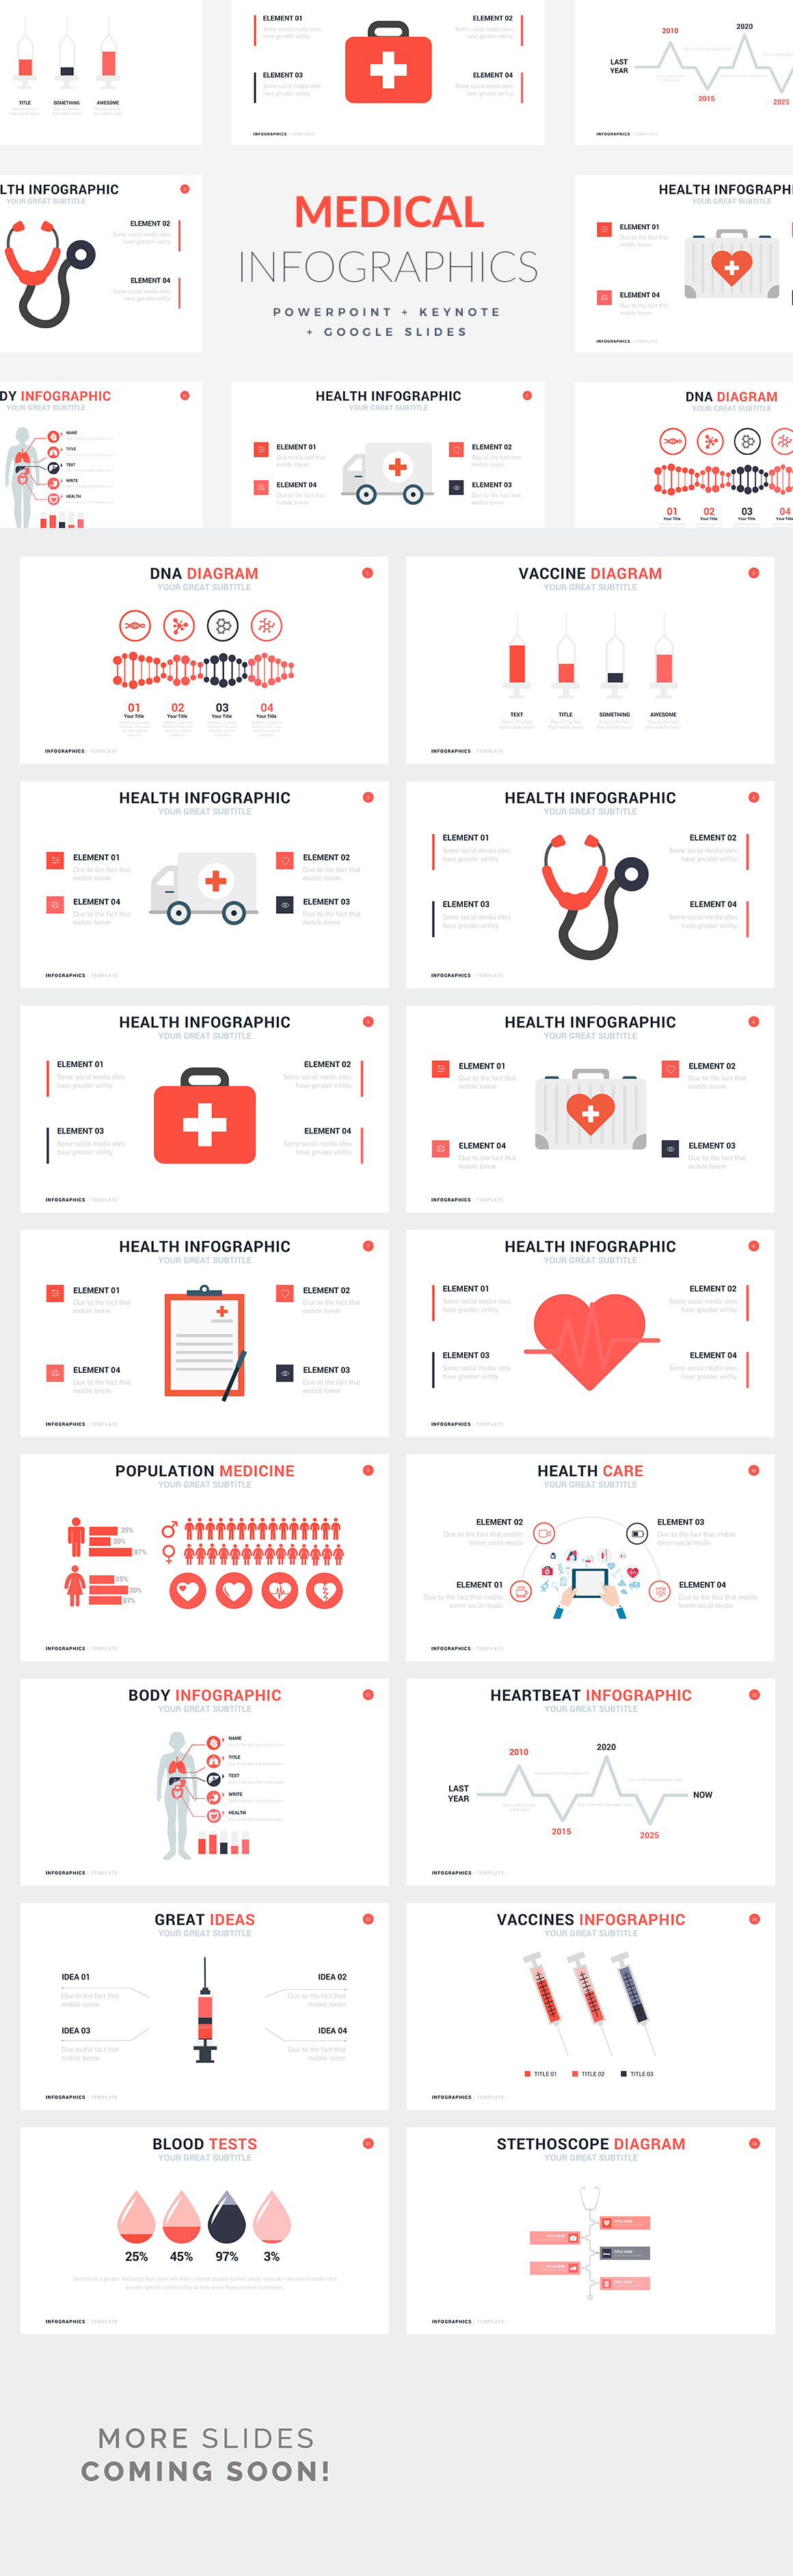 Medical Infographic Templates - PowerPoint Templates - Keynote Themes - Google Slides